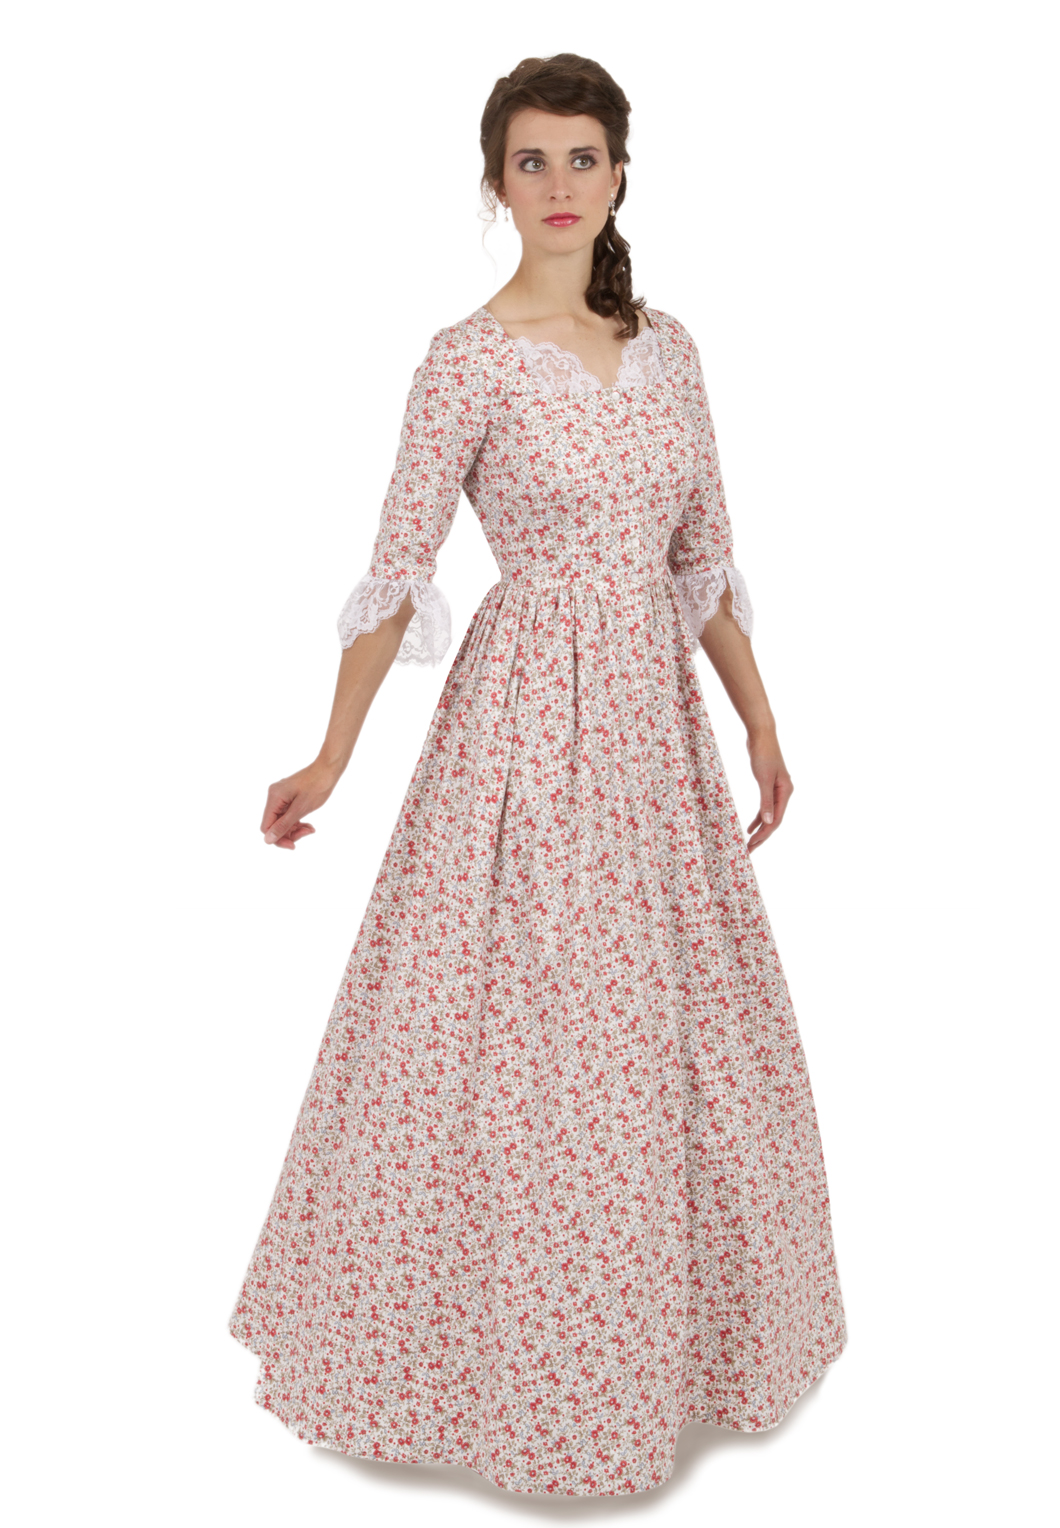 Floor Fashioned Dresses Download Fashioned Dresses Charles Lawyer Mtm Fashioned Dresses 1700 Fashioned Dresses Amazon wedding dress Old Fashioned Dresses